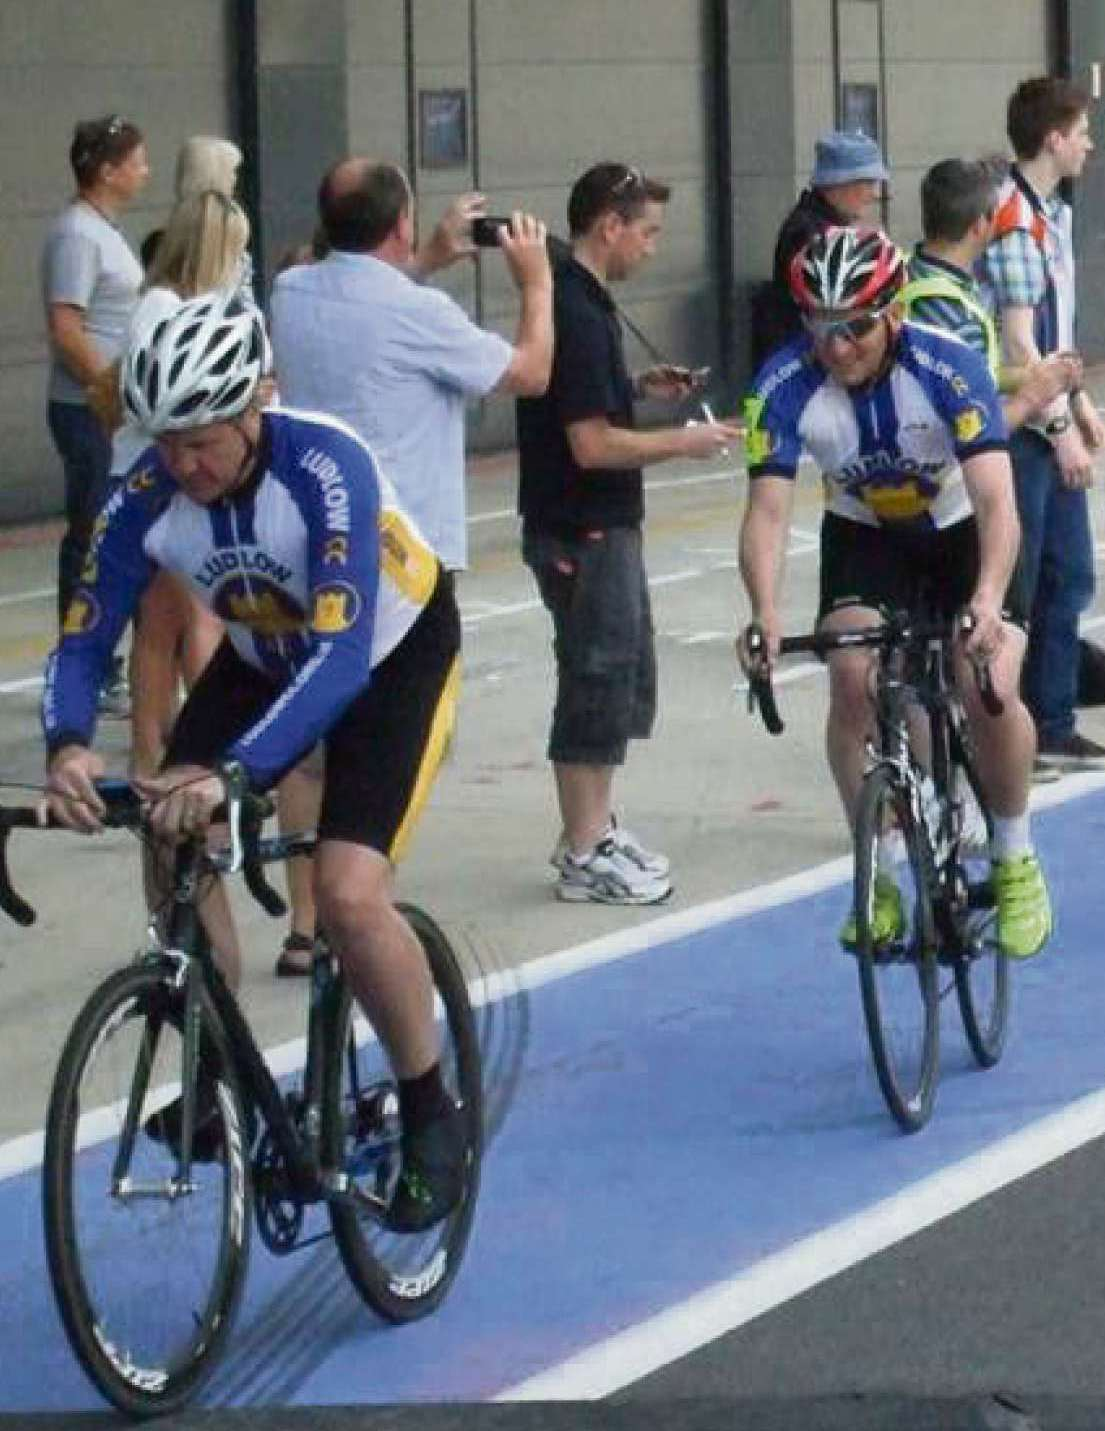 Ludlow Cycling Club in the pit lane at Silverstone.